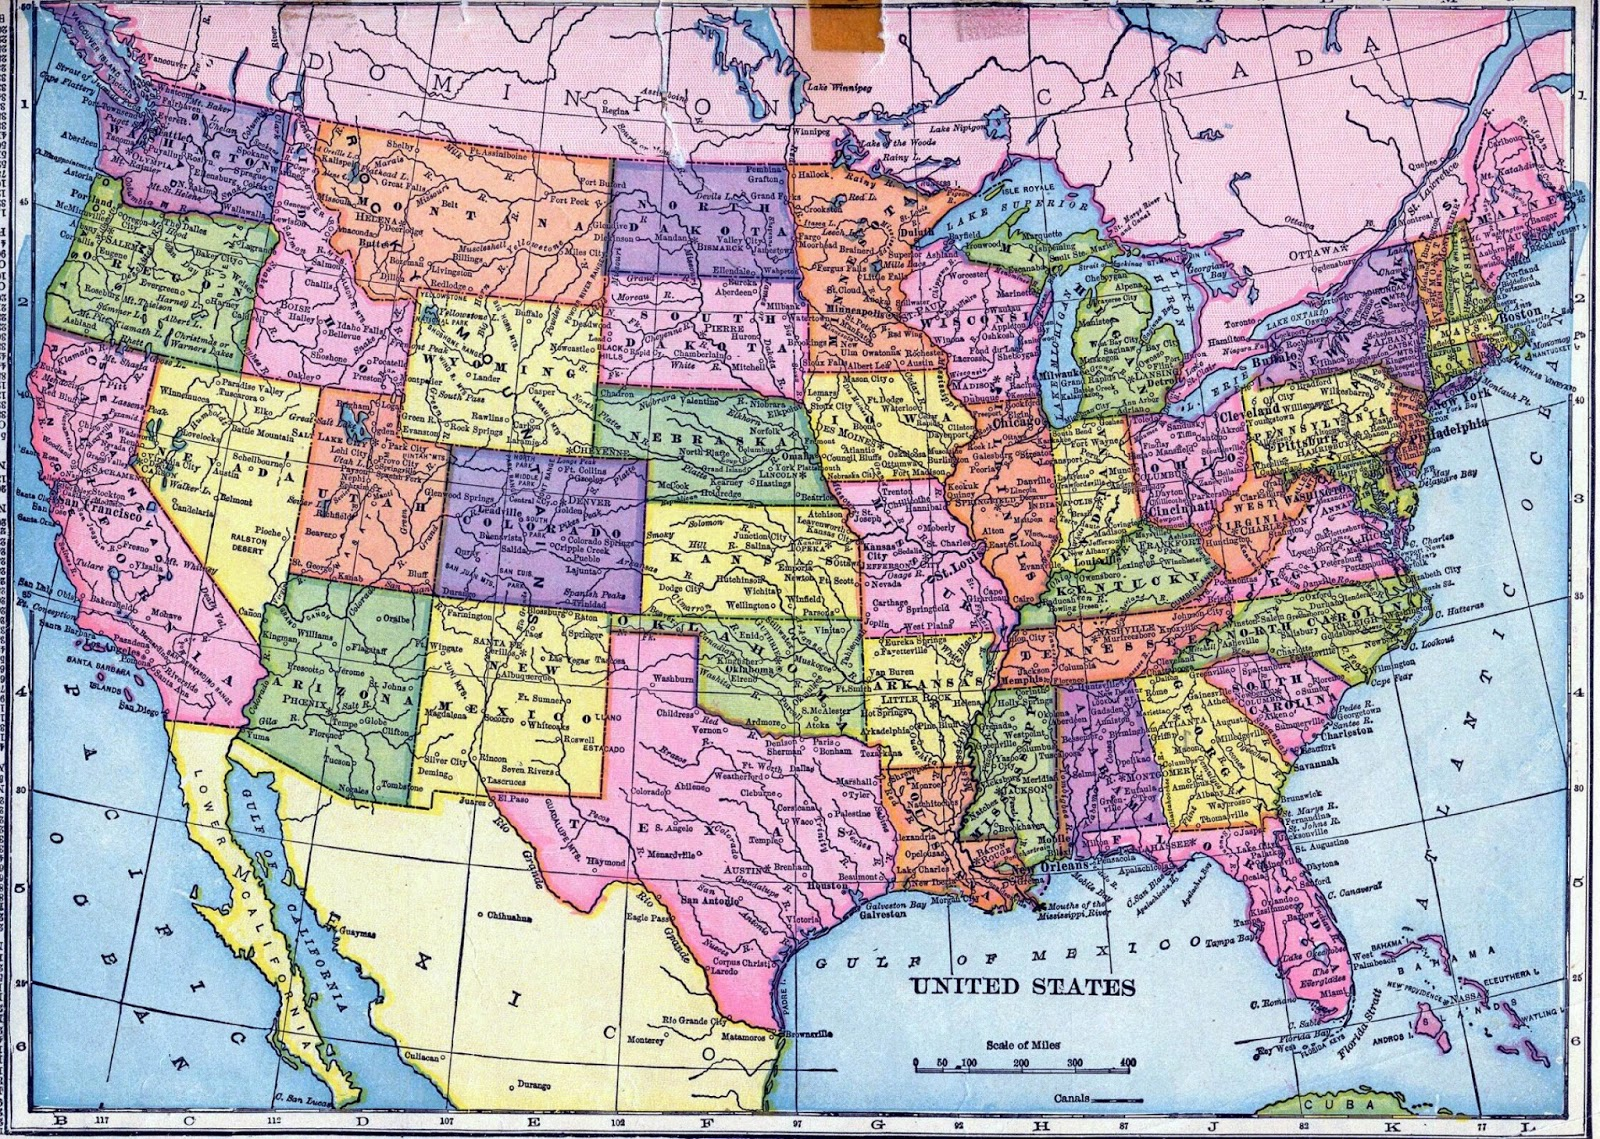 Kgapofem Map Of Usa States With Cities Usa Map States And Cities - Usa road map